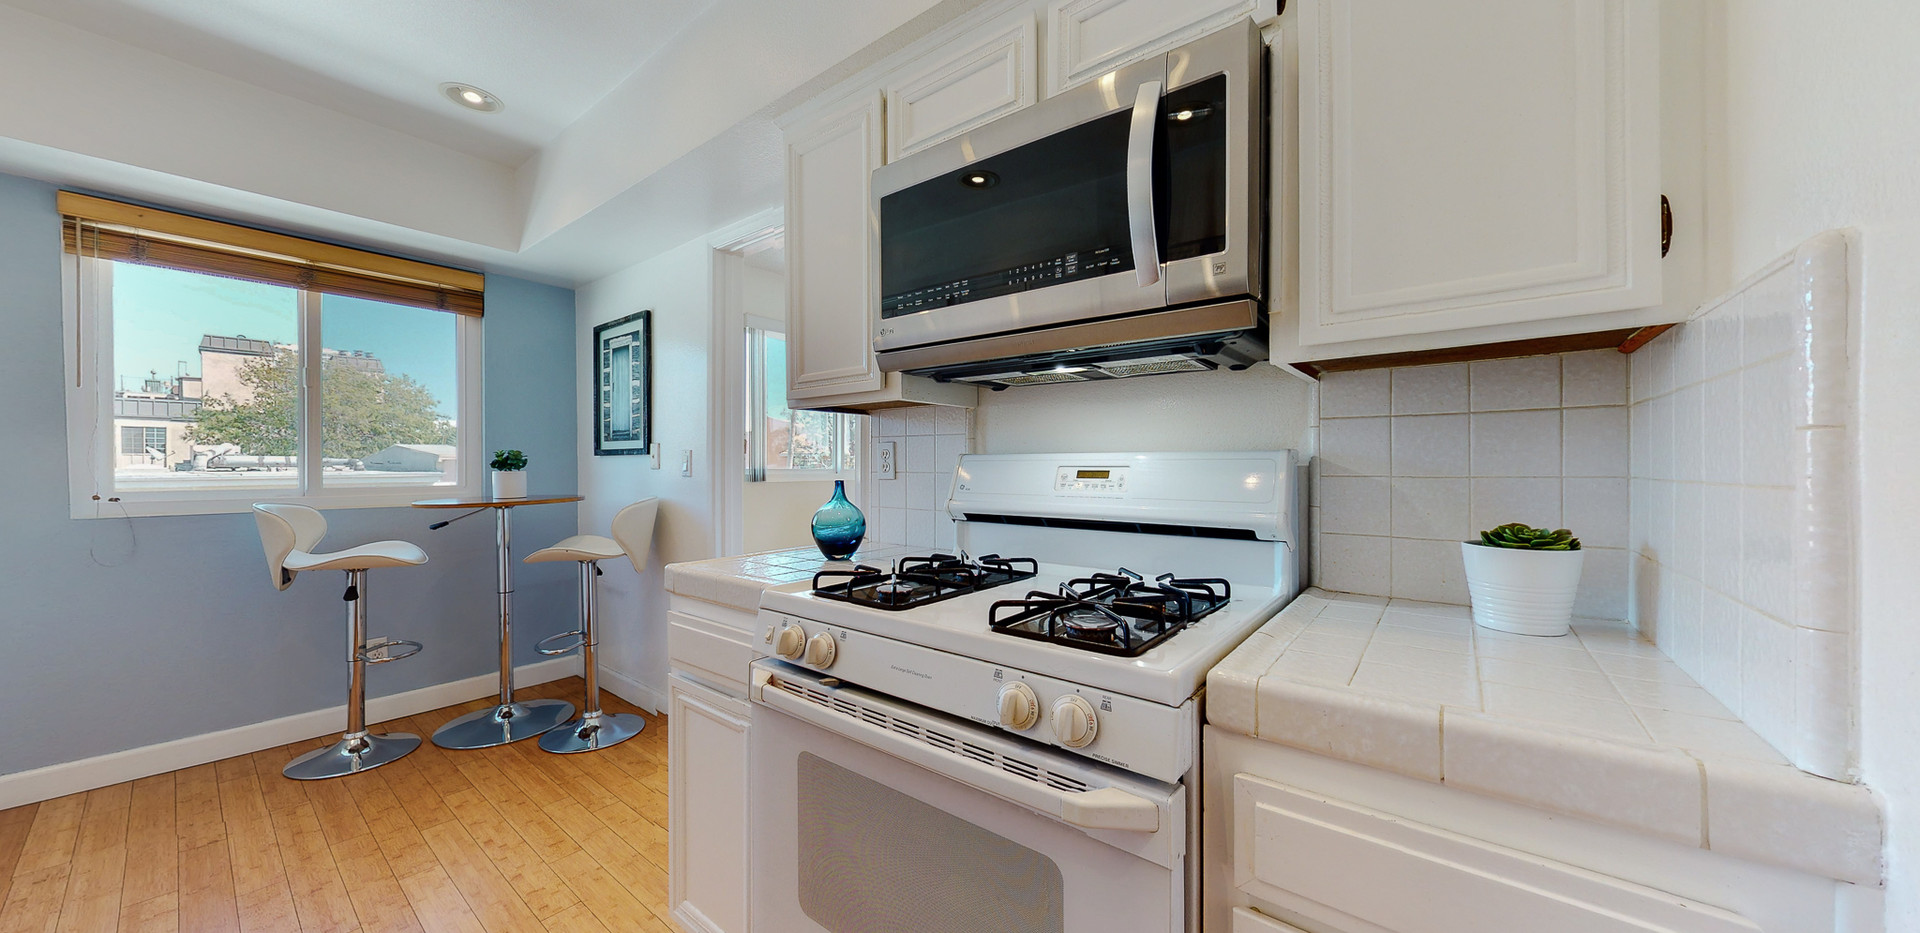 10345 Almayo Ave Unit 307-24.JPG